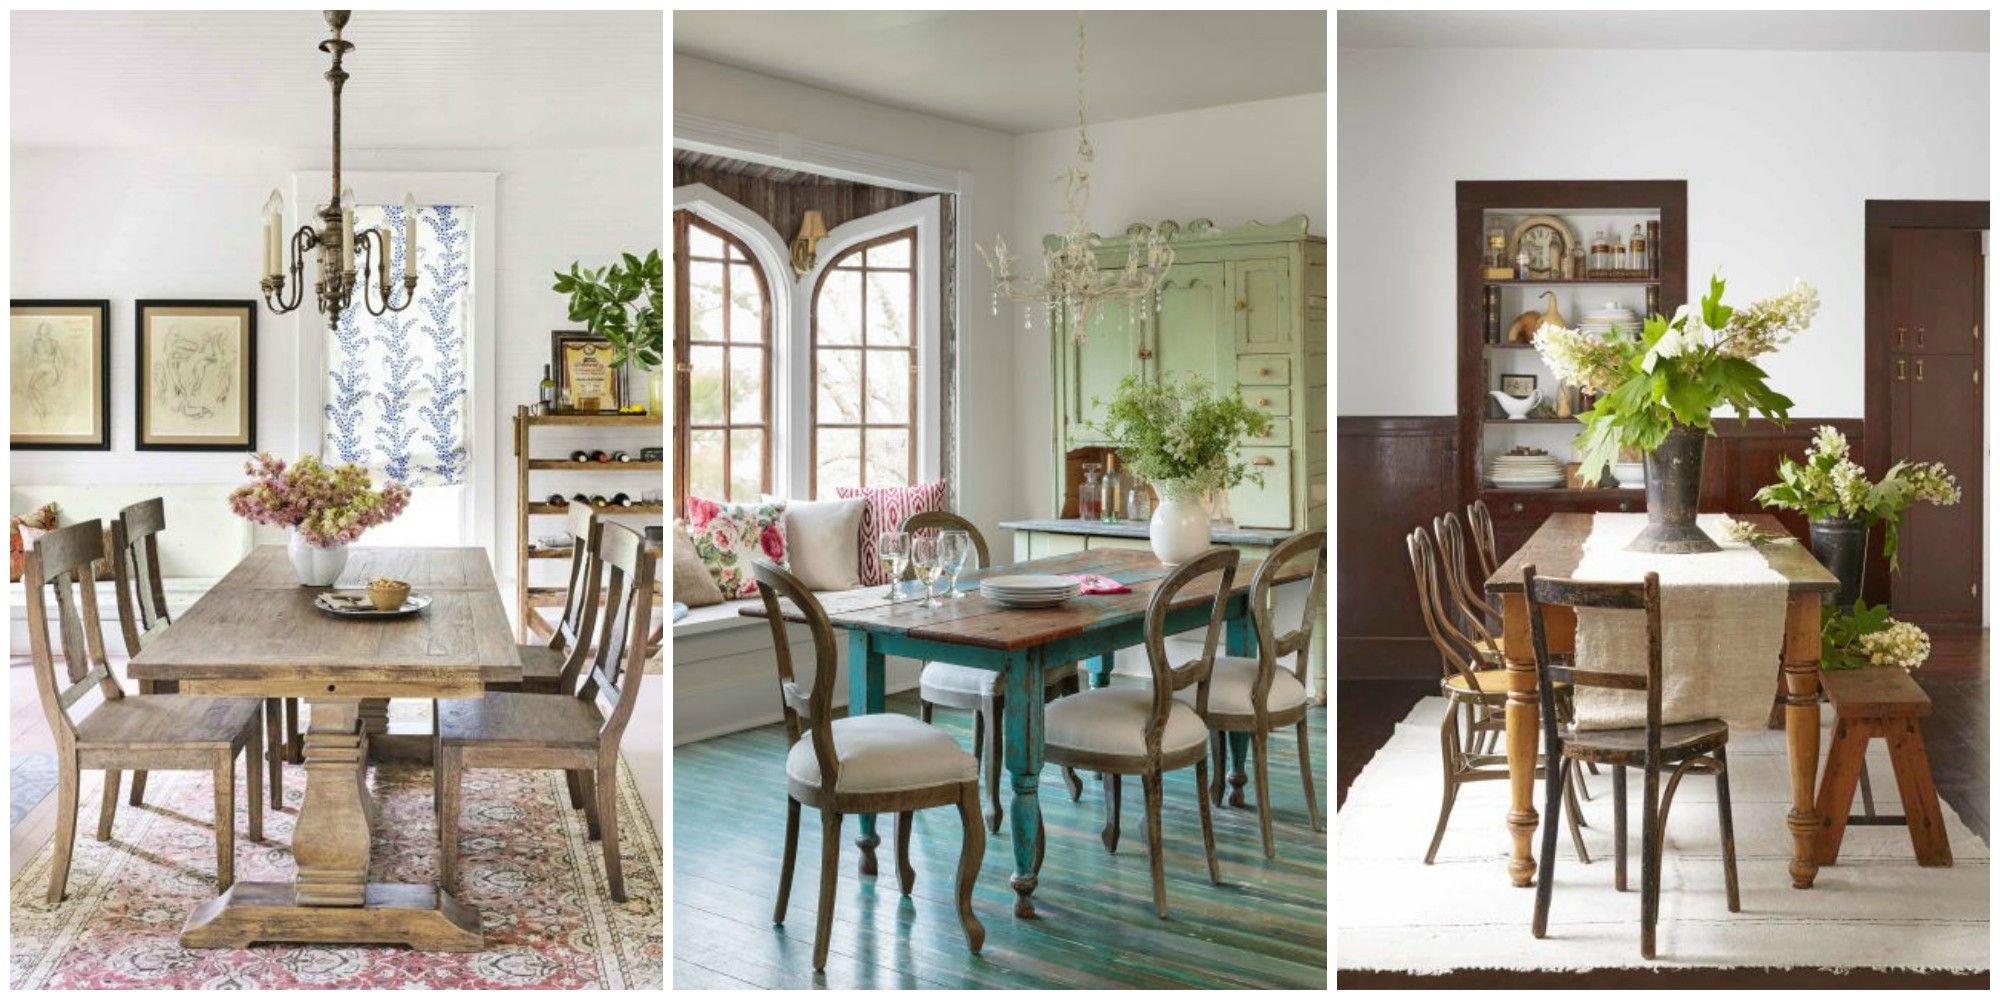 Small Kitchen Dining Table Ideas Part - 45: Do Rugs Belong In The Dining Room Or Not?